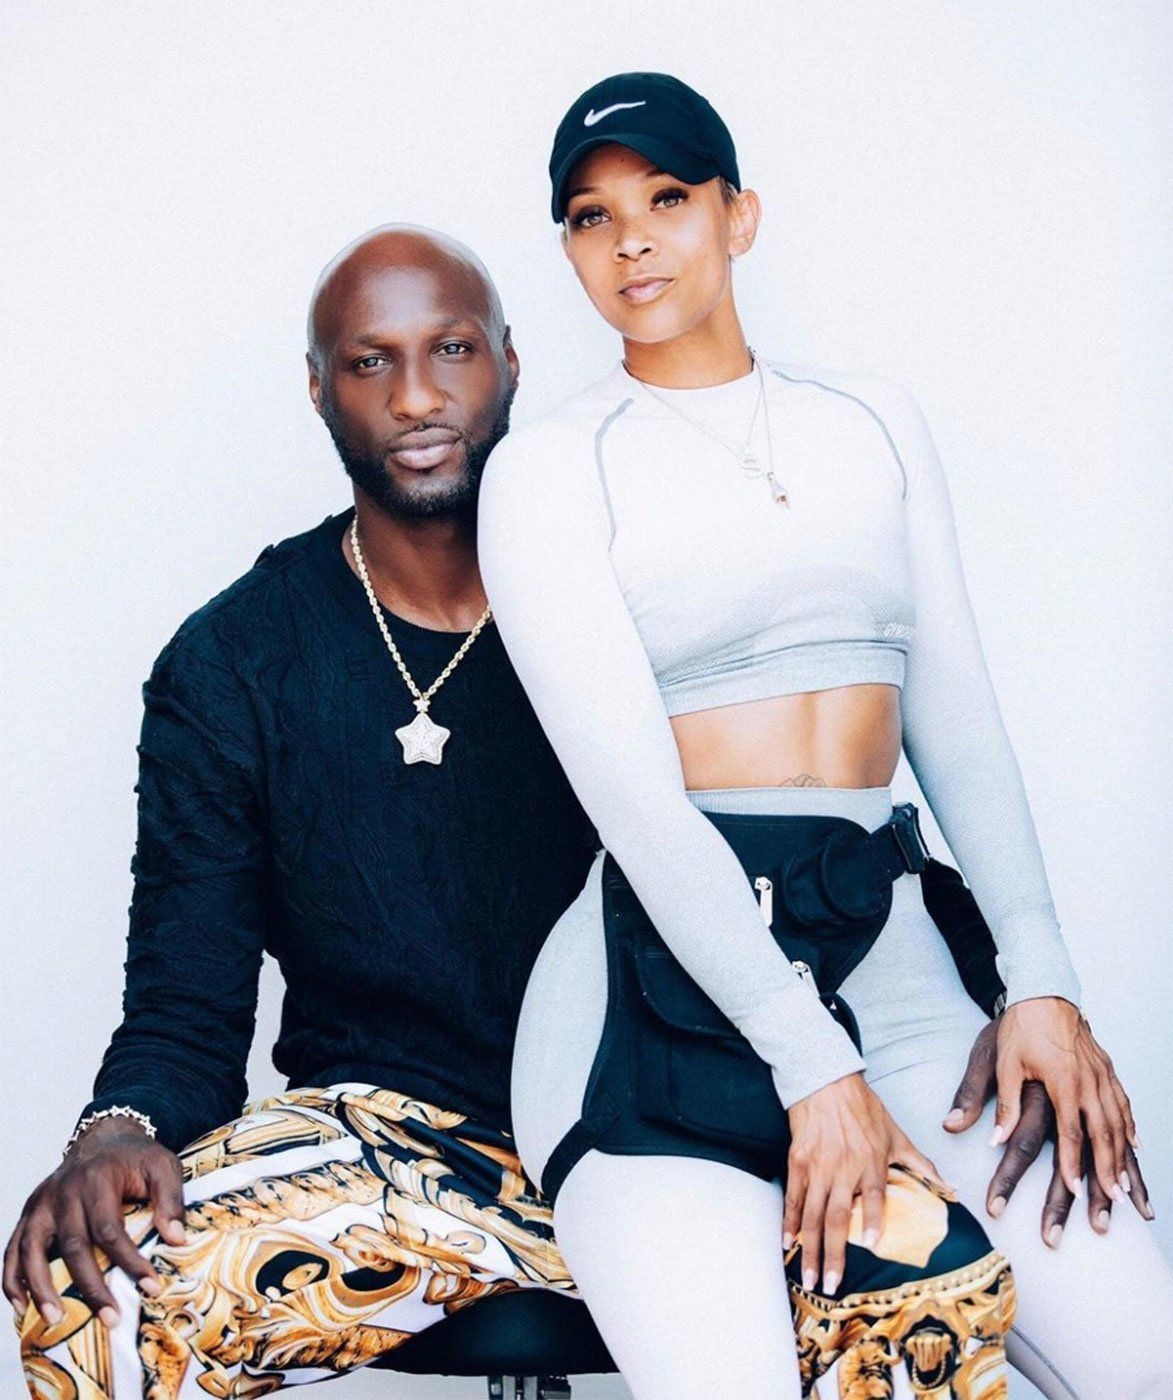 Lamar Odom and Sabrina Parr call off their engagement